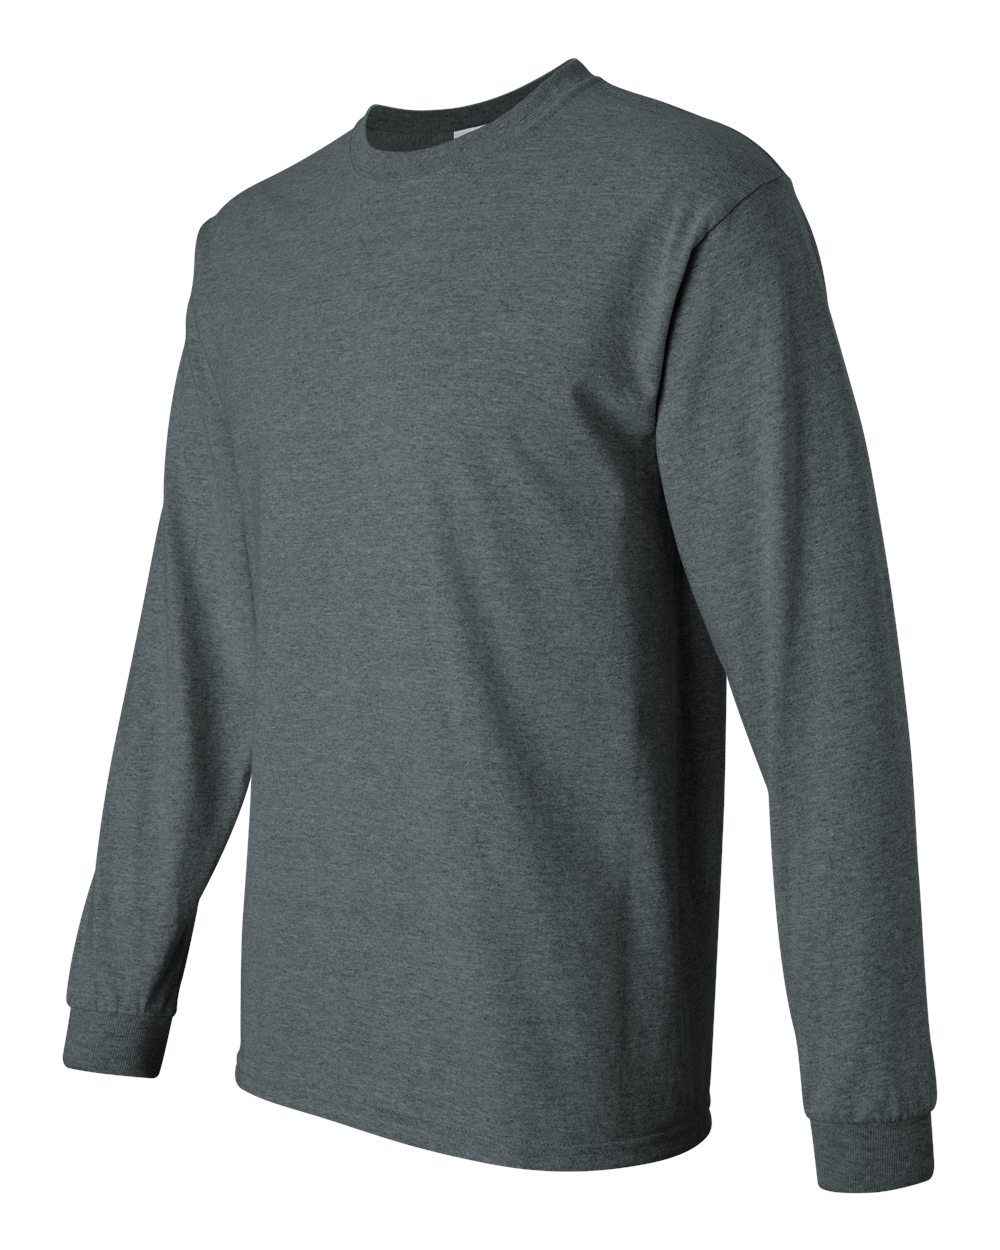 Gildan-Men-039-s-Ultra-Cotton-6-oz-Long-Sleeve-T-Shirt-G240-S-5XL thumbnail 27